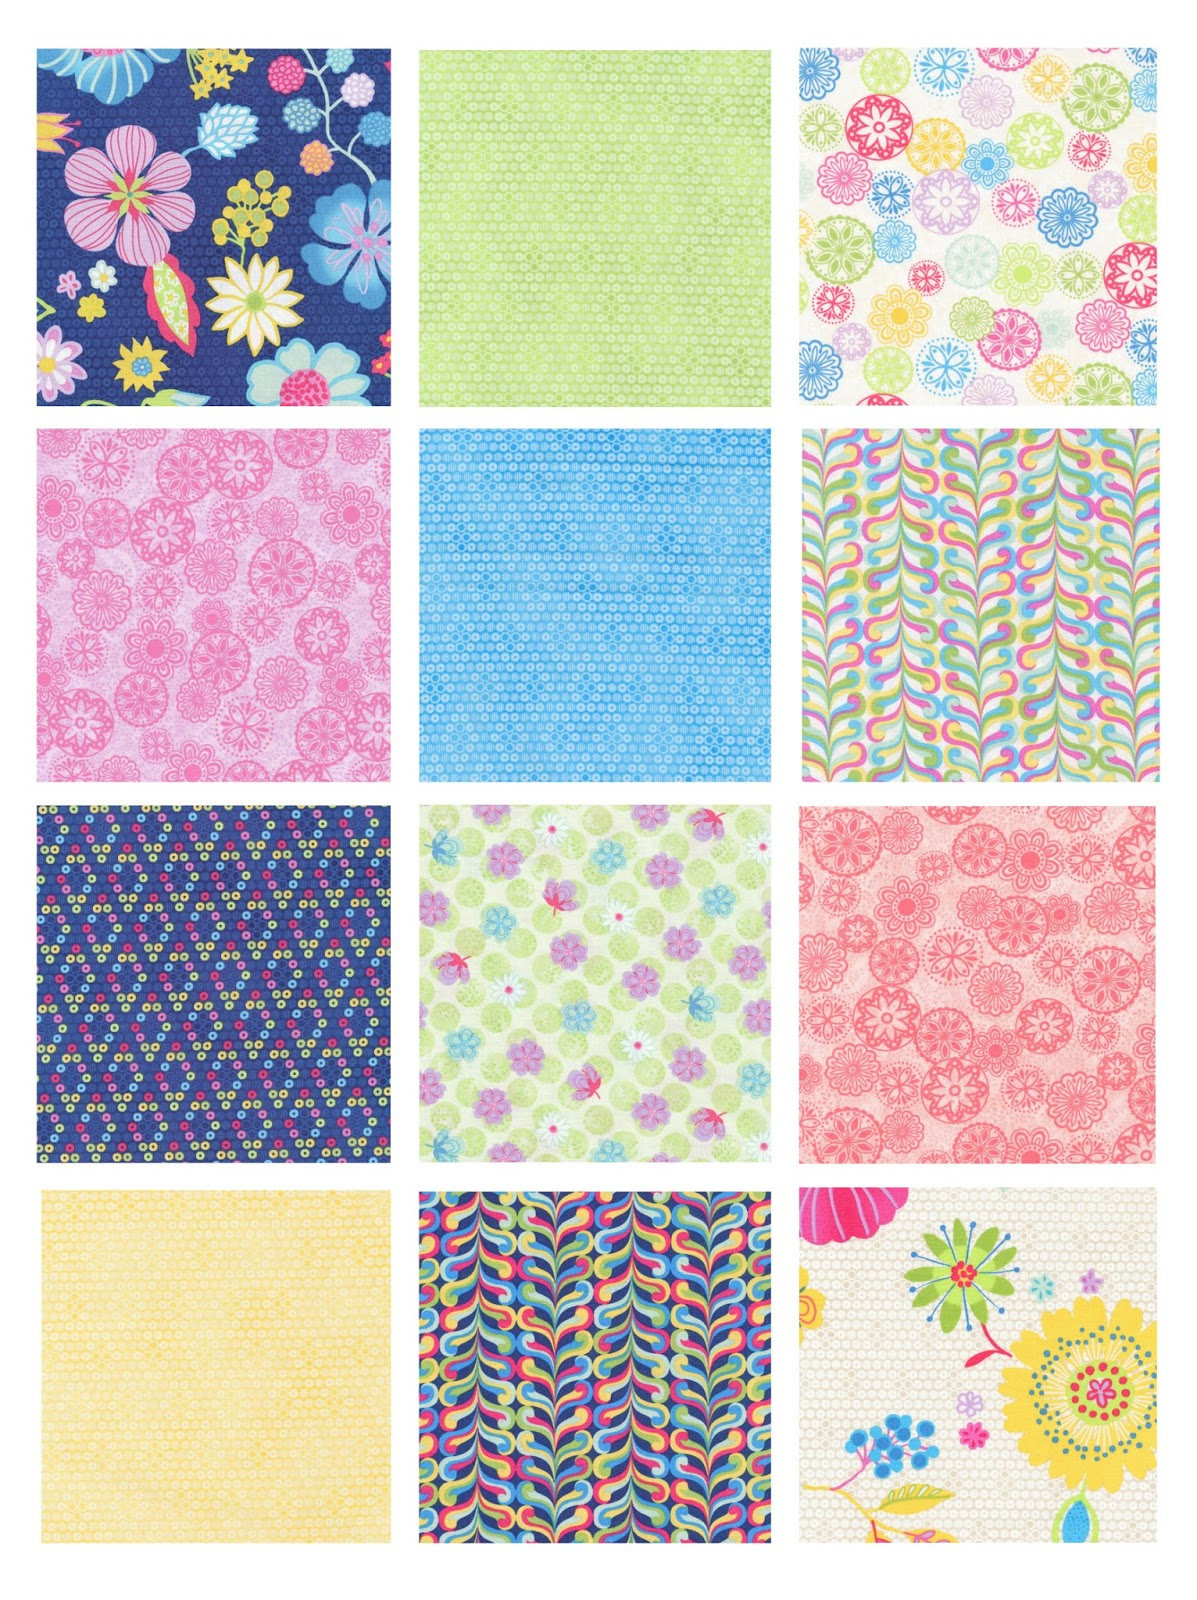 Free Quilt Patterns For Large Prints : Inspired by Fabric: If fabric makes you happy...